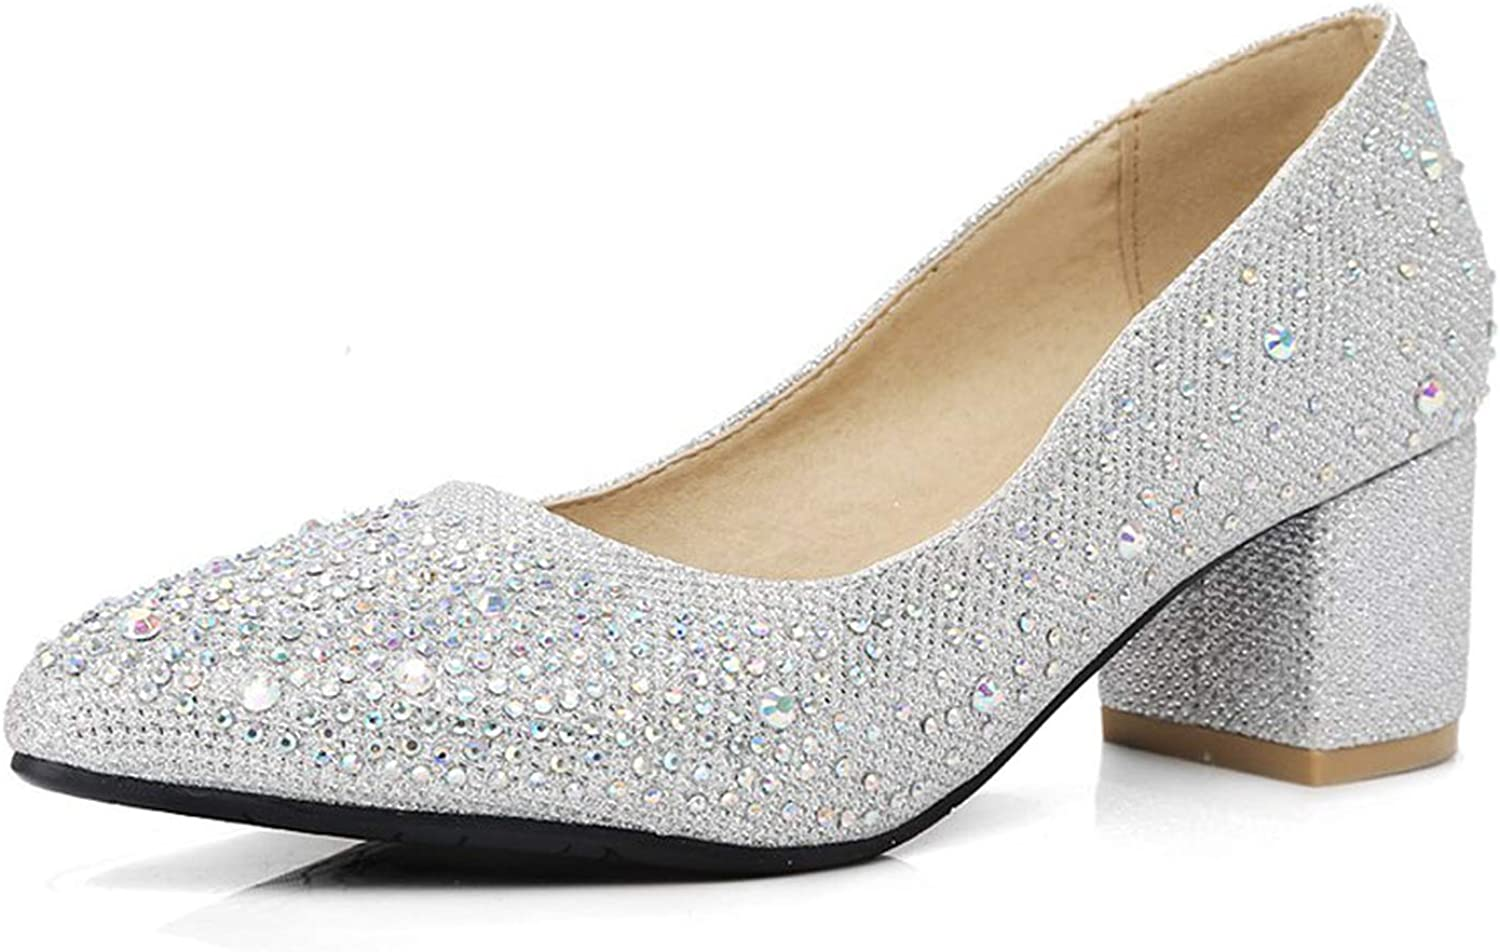 Magic Day Pointed High Heels Pumps Sequined Crystal Ladies Slip On shoes Woman Big Size 45 Rhinestone